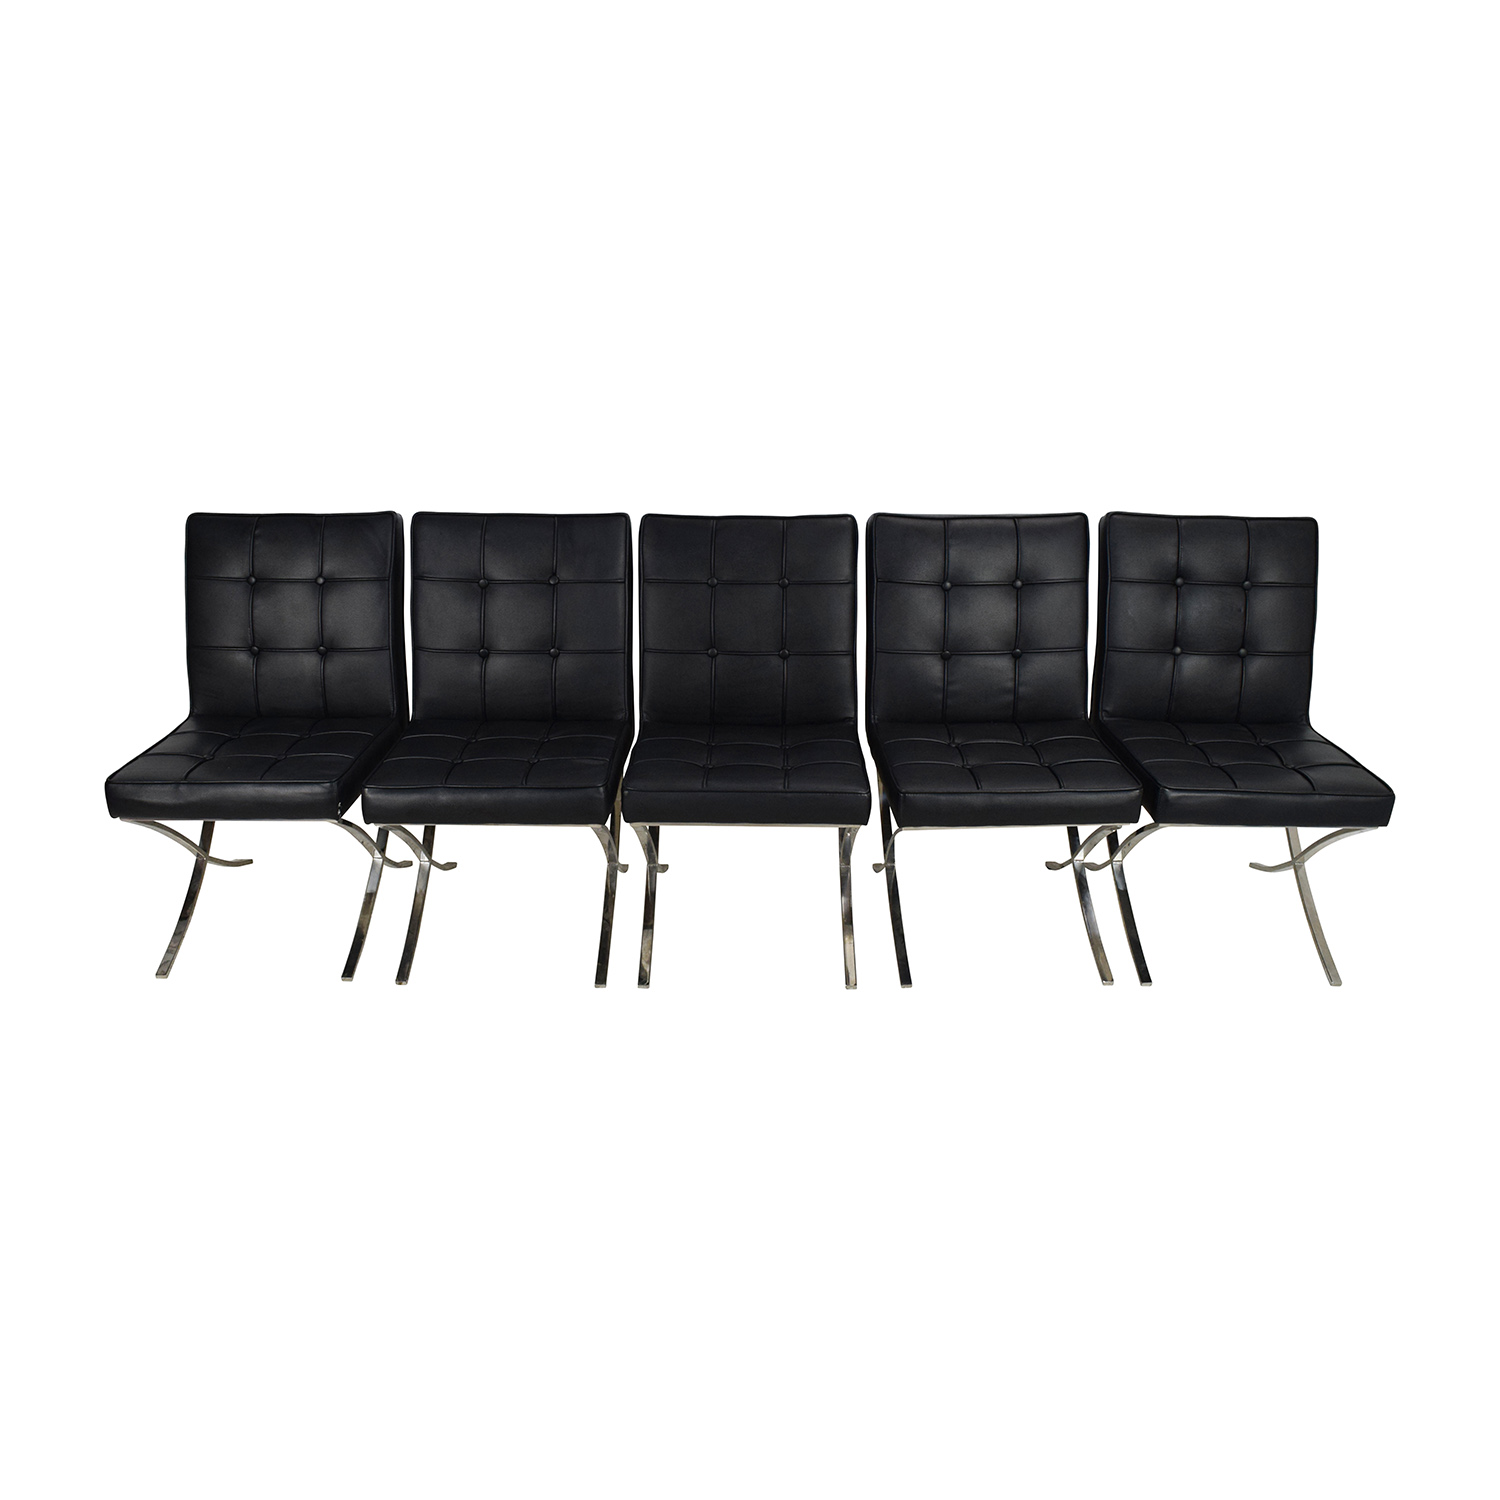 Black Leather Conference Room Chair Set price